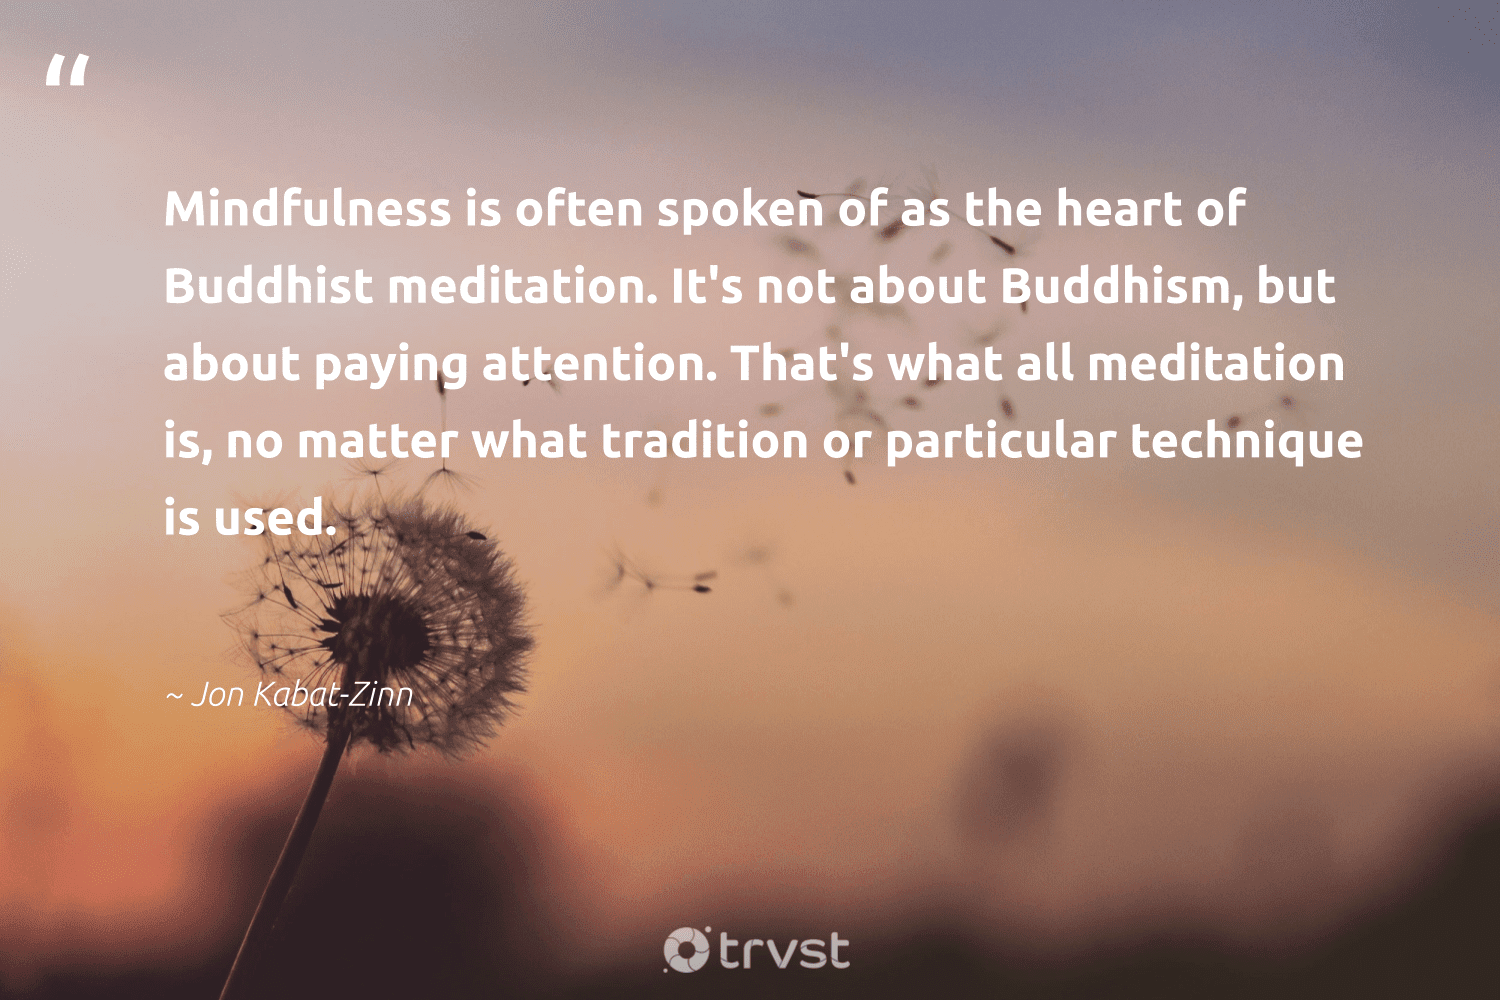 """""""Mindfulness is often spoken of as the heart of Buddhist meditation. It's not about Buddhism, but about paying attention. That's what all meditation is, no matter what tradition or particular technique is used.""""  - Jon Kabat-Zinn #trvst #quotes #mindfulness #meditation #mindful #motivation #mentalheatlh #begreat #socialchange #goals #positivity #wellness"""